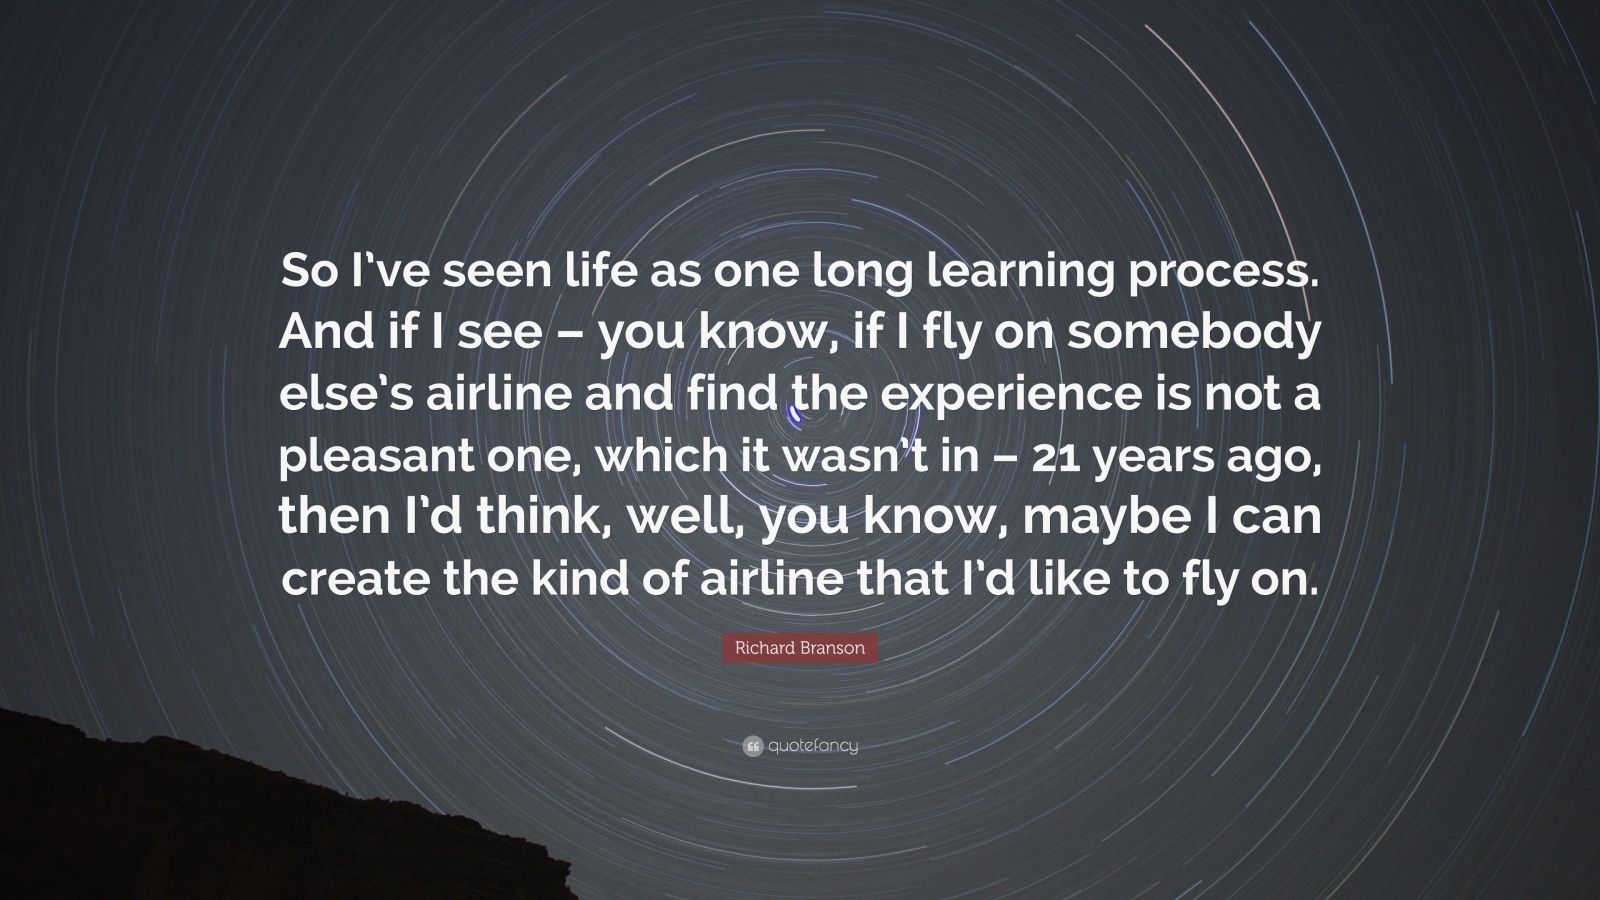 """Richard Branson Quote: """"So I've seen life as one long learning process. And if I see – you know, if I fly on somebody else's airline and find the experience is not a pleasant one, which it wasn't in – 21 years ago, then I'd think, well, you know, maybe I can create the kind of airline that I'd like to fly on."""""""